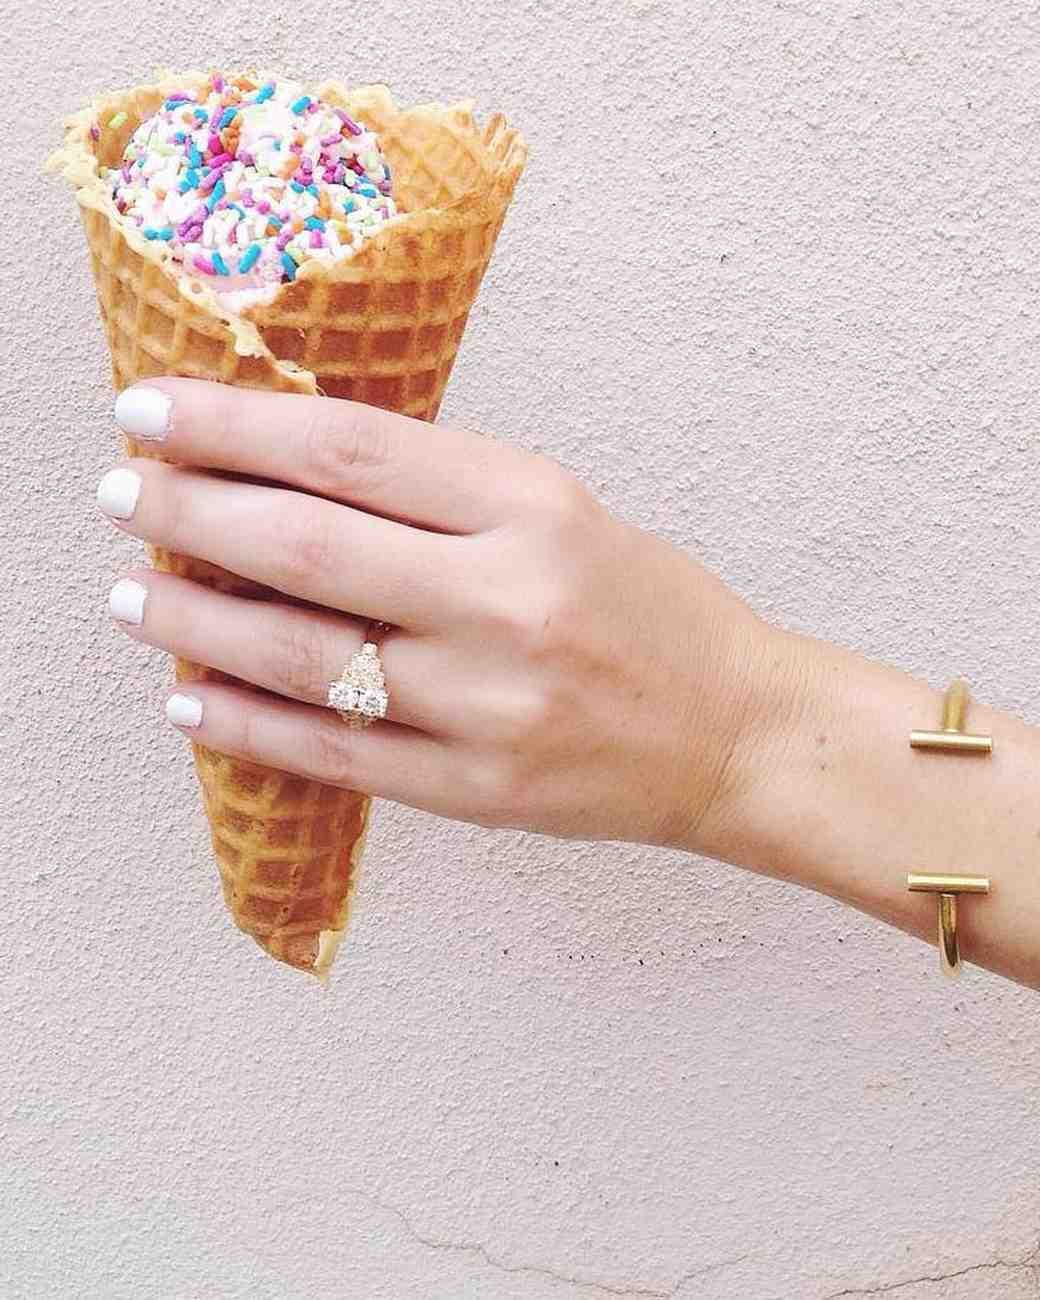 engagement-ring-selfies-ice-cream-cone-sprinkles-0216.jpg